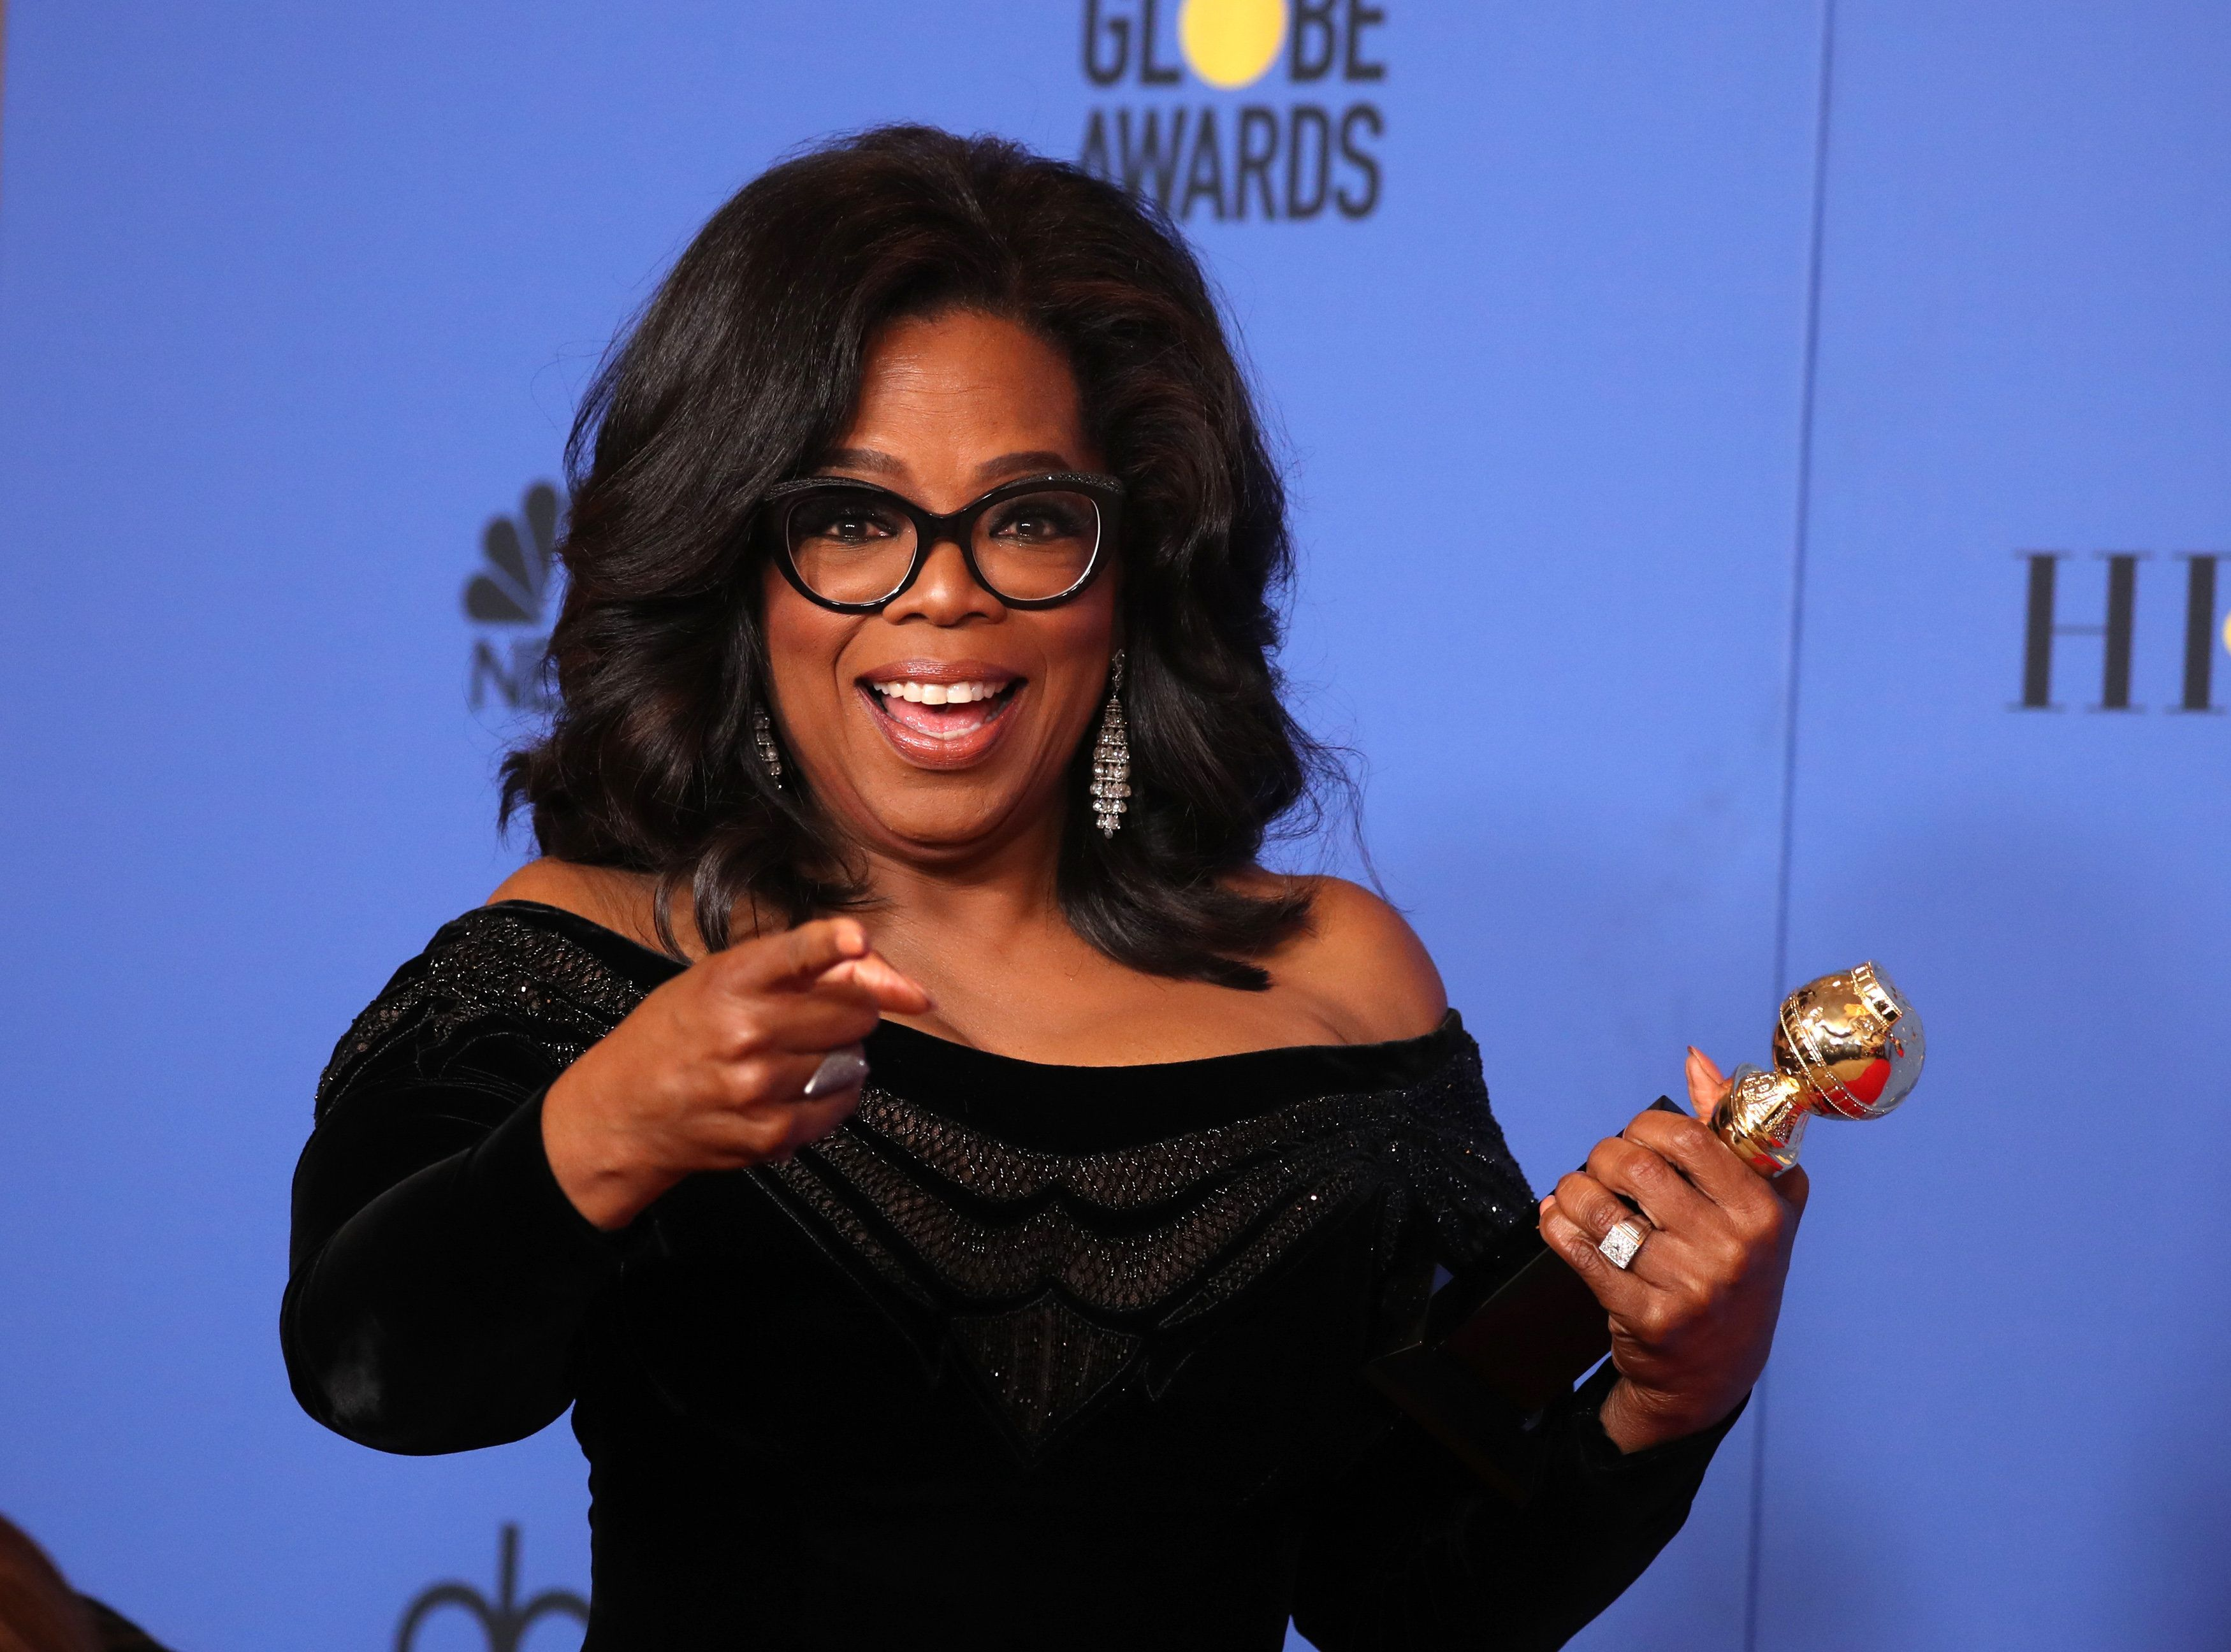 Oprah Winfrey 'Would Absolutely' Run For President... She Just Needs A